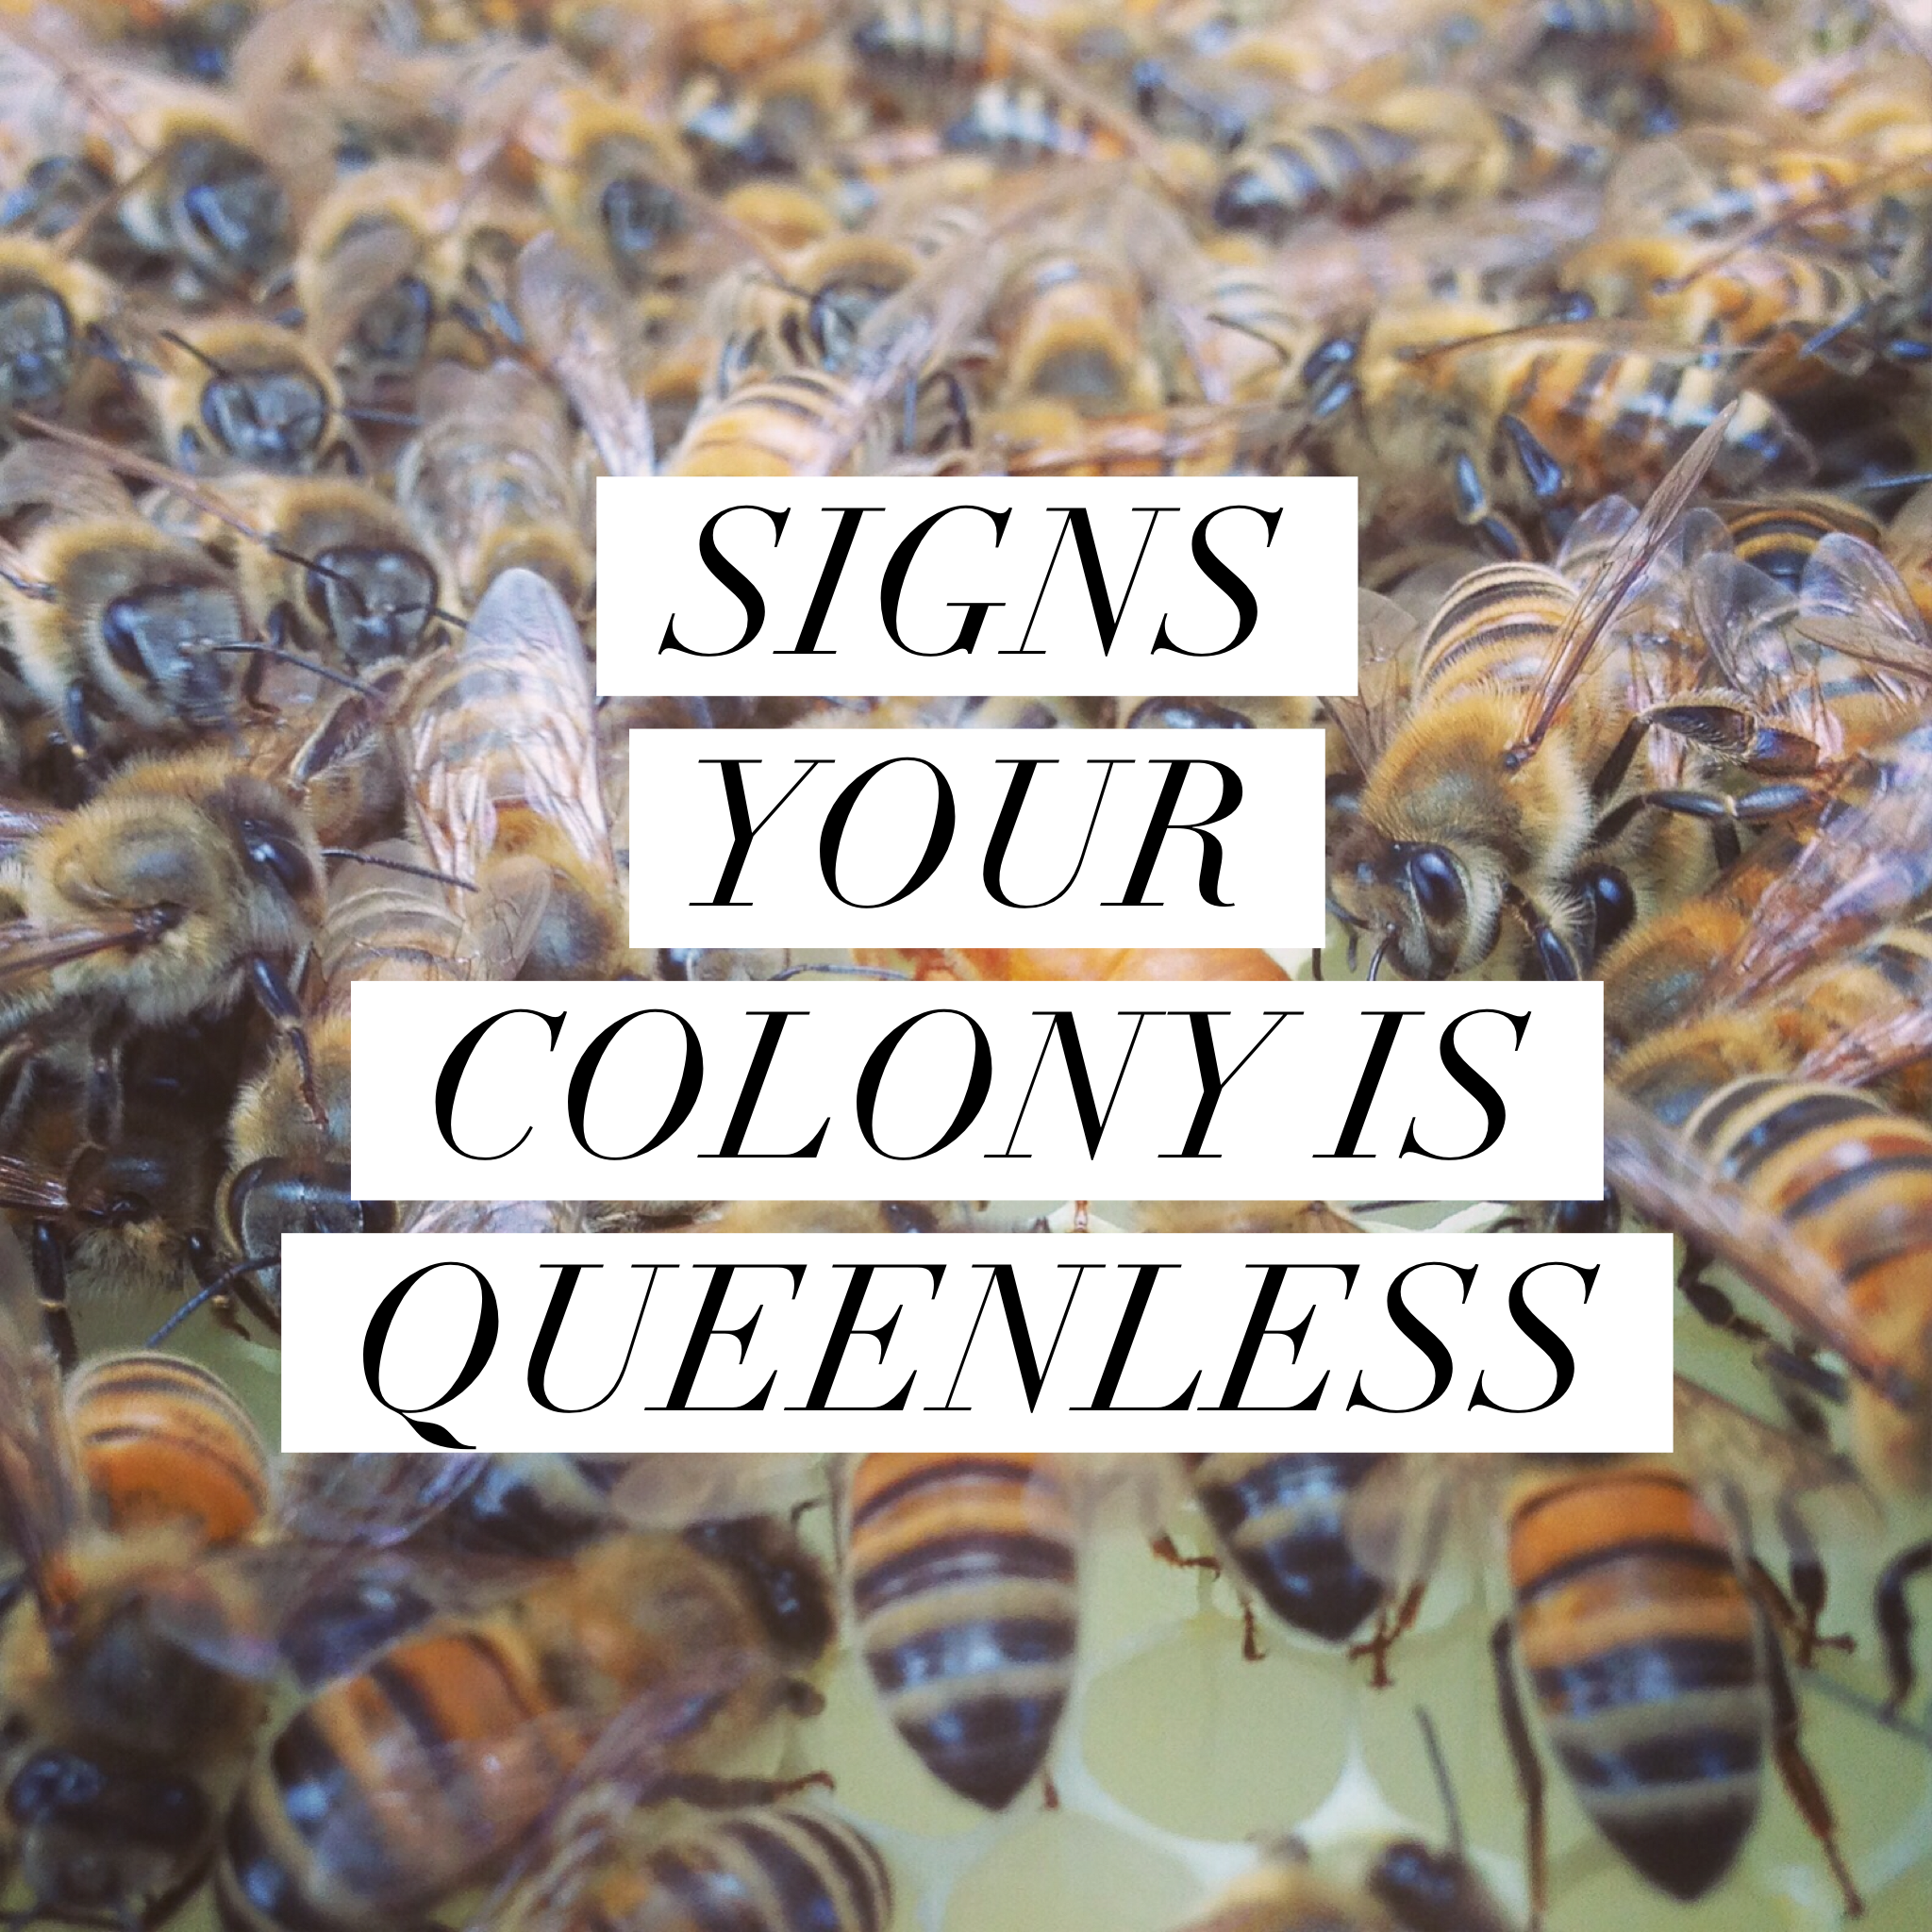 f494d5fc89 Beekeeping Like A Girl SIGNS YOUR COLONY IS QUEENLESS